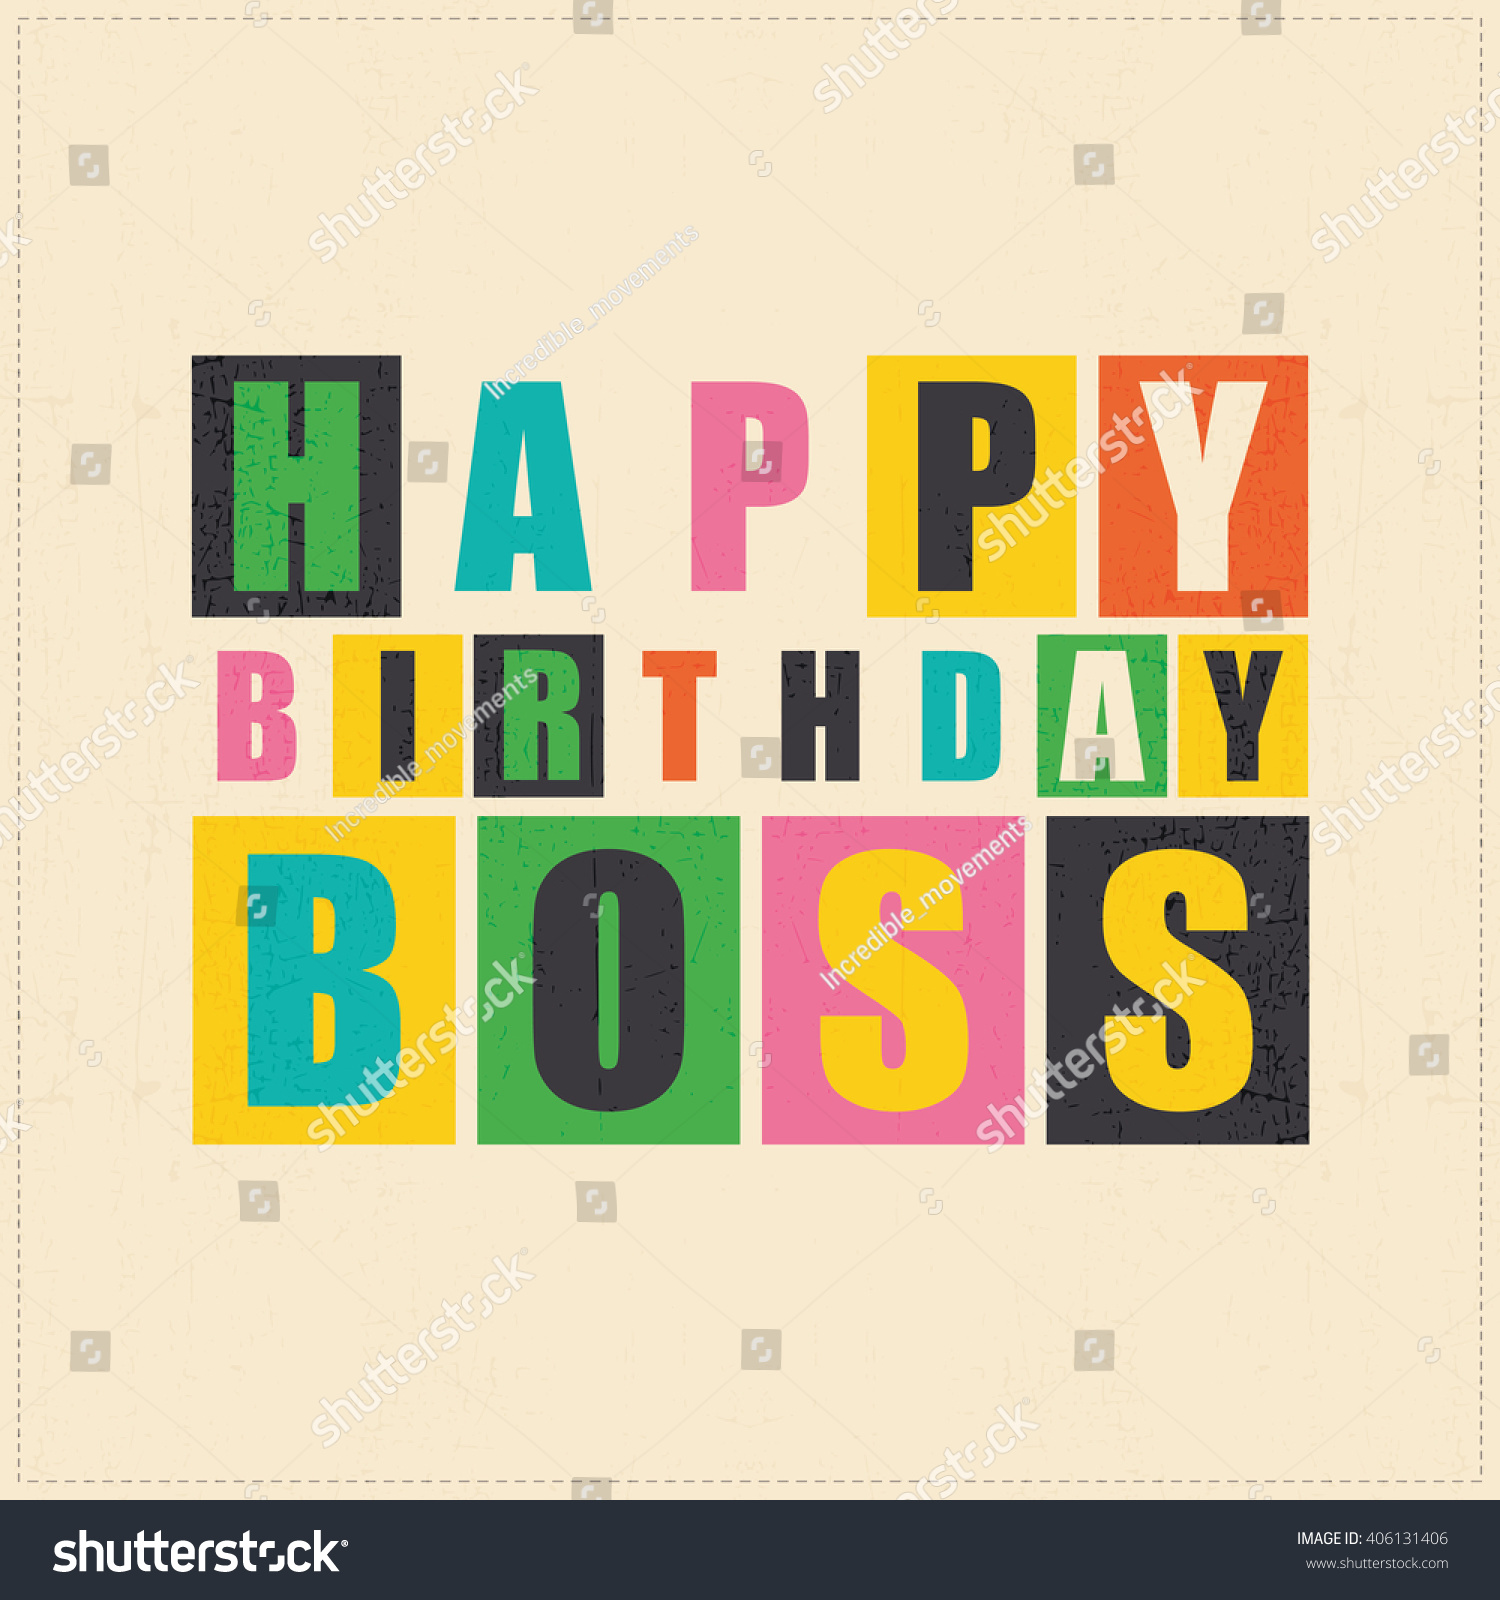 birthday card images for boss ; stock-vector-happy-birthday-card-happy-birthday-boss-vector-illustration-406131406